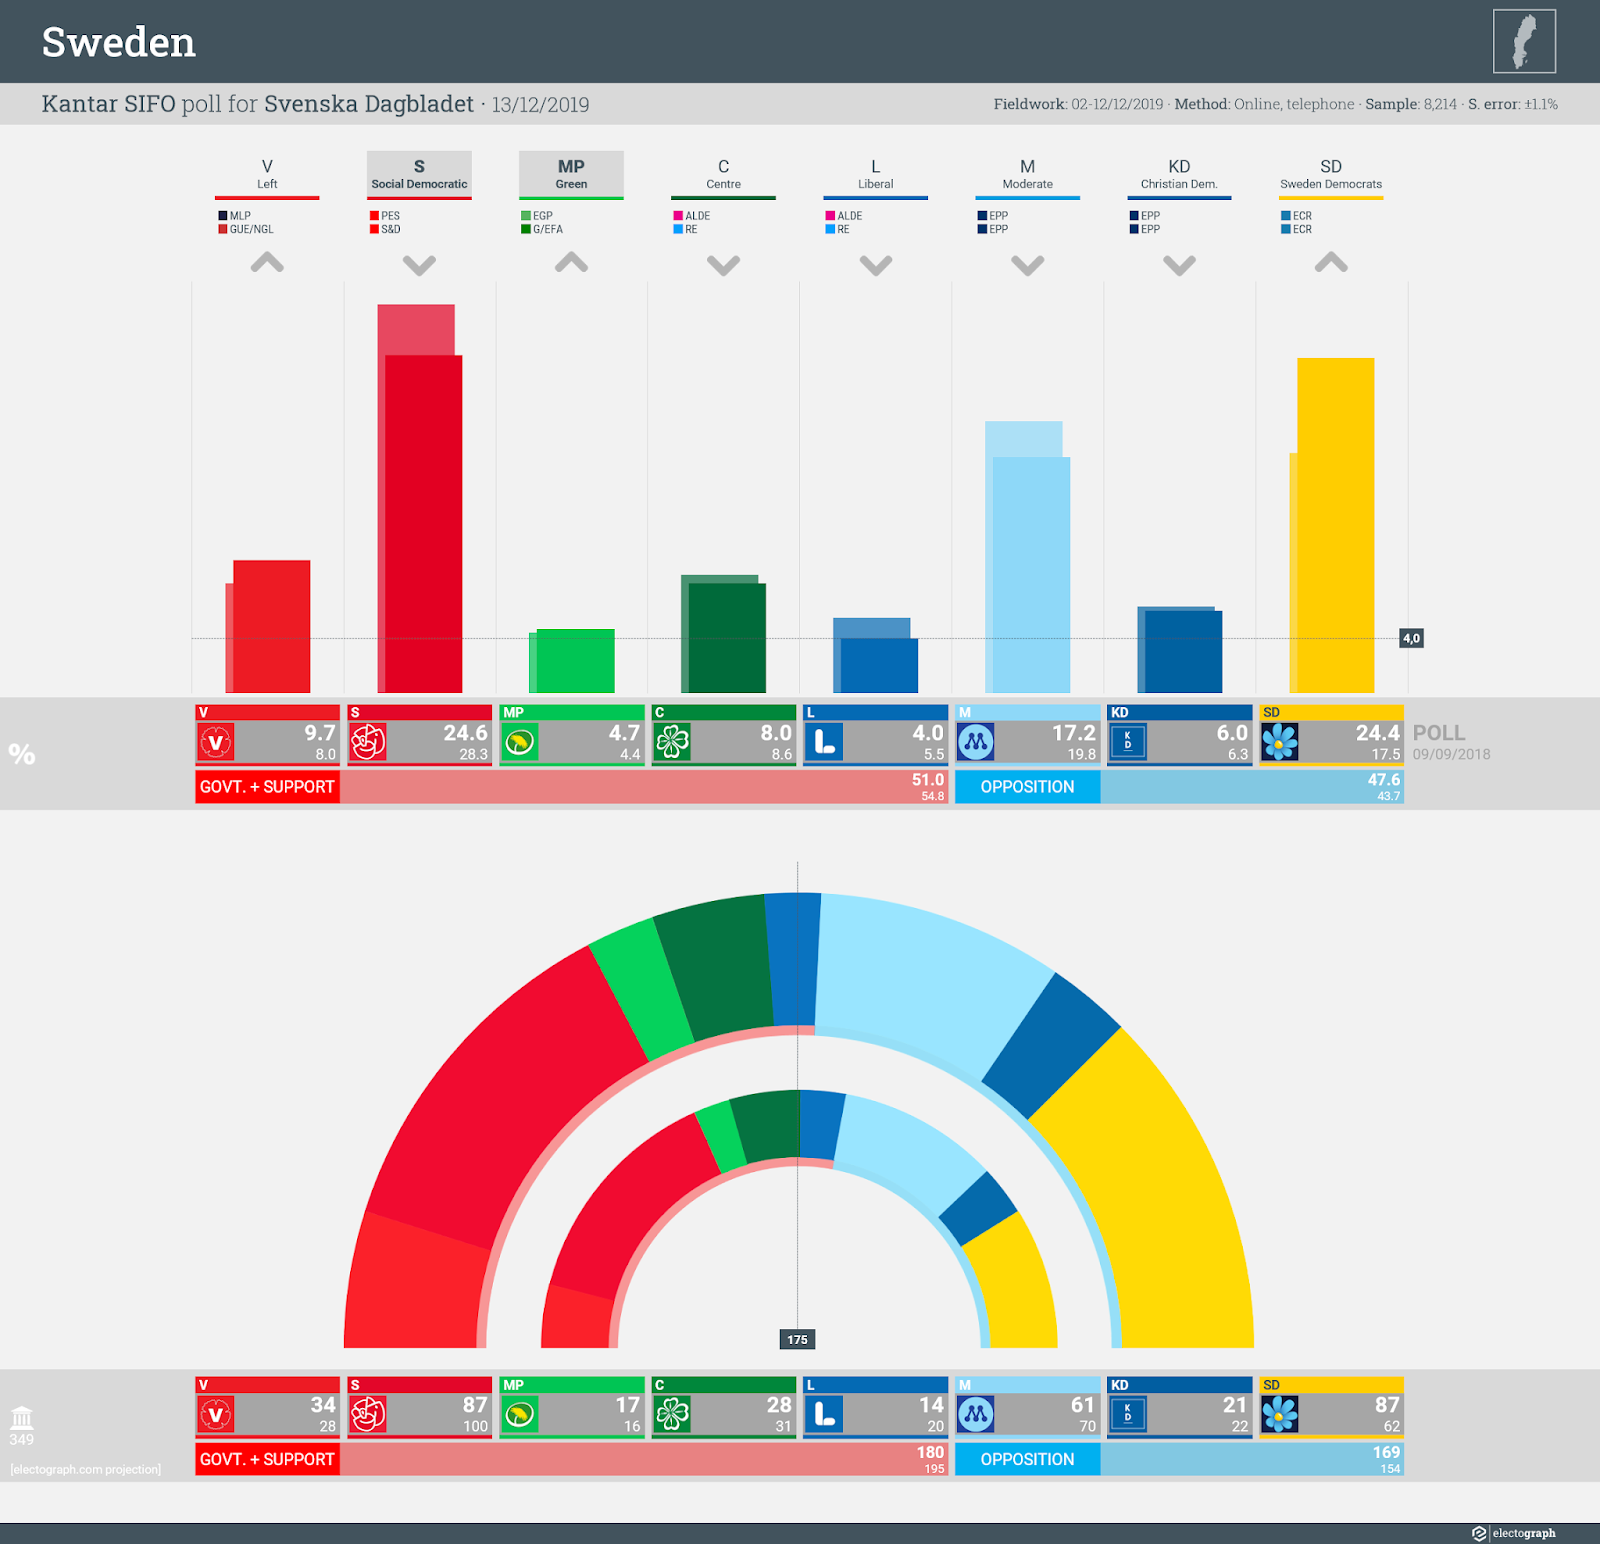 SWEDEN: Kantar SIFO poll chart for Svenska Dagbladet, 13 December 2019